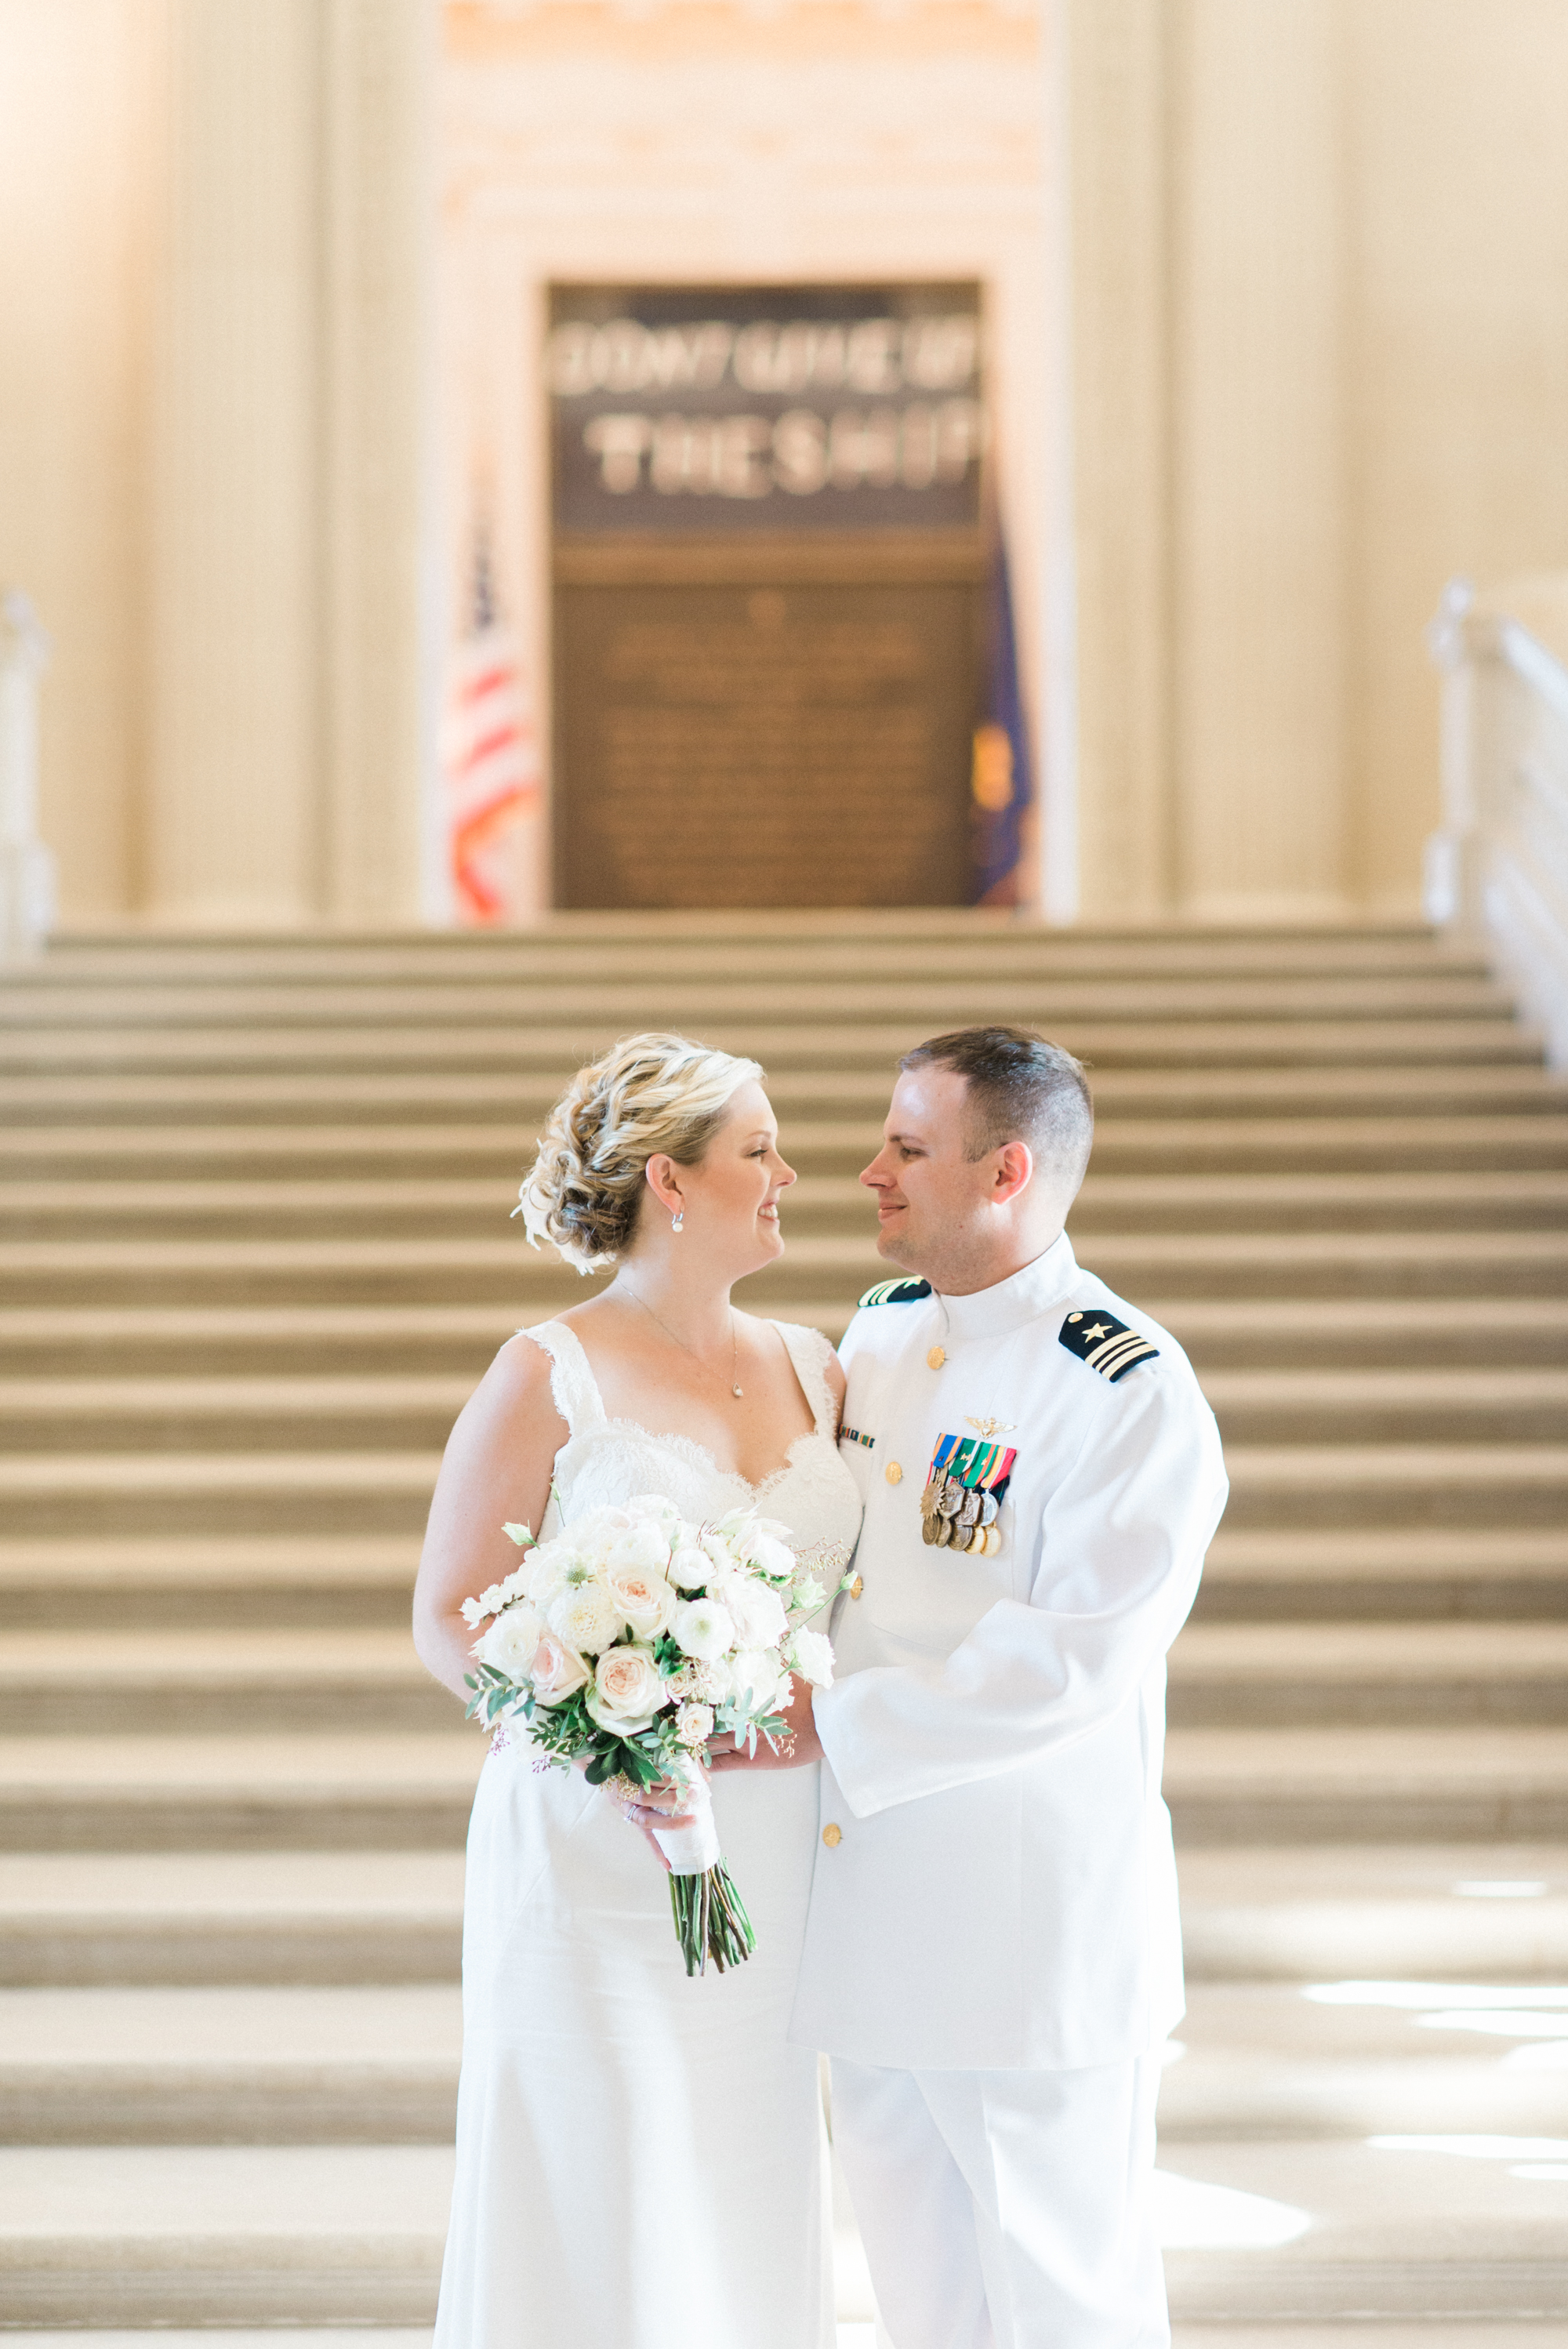 USNA-maritime-wedding-day-jj(48of233).jpg